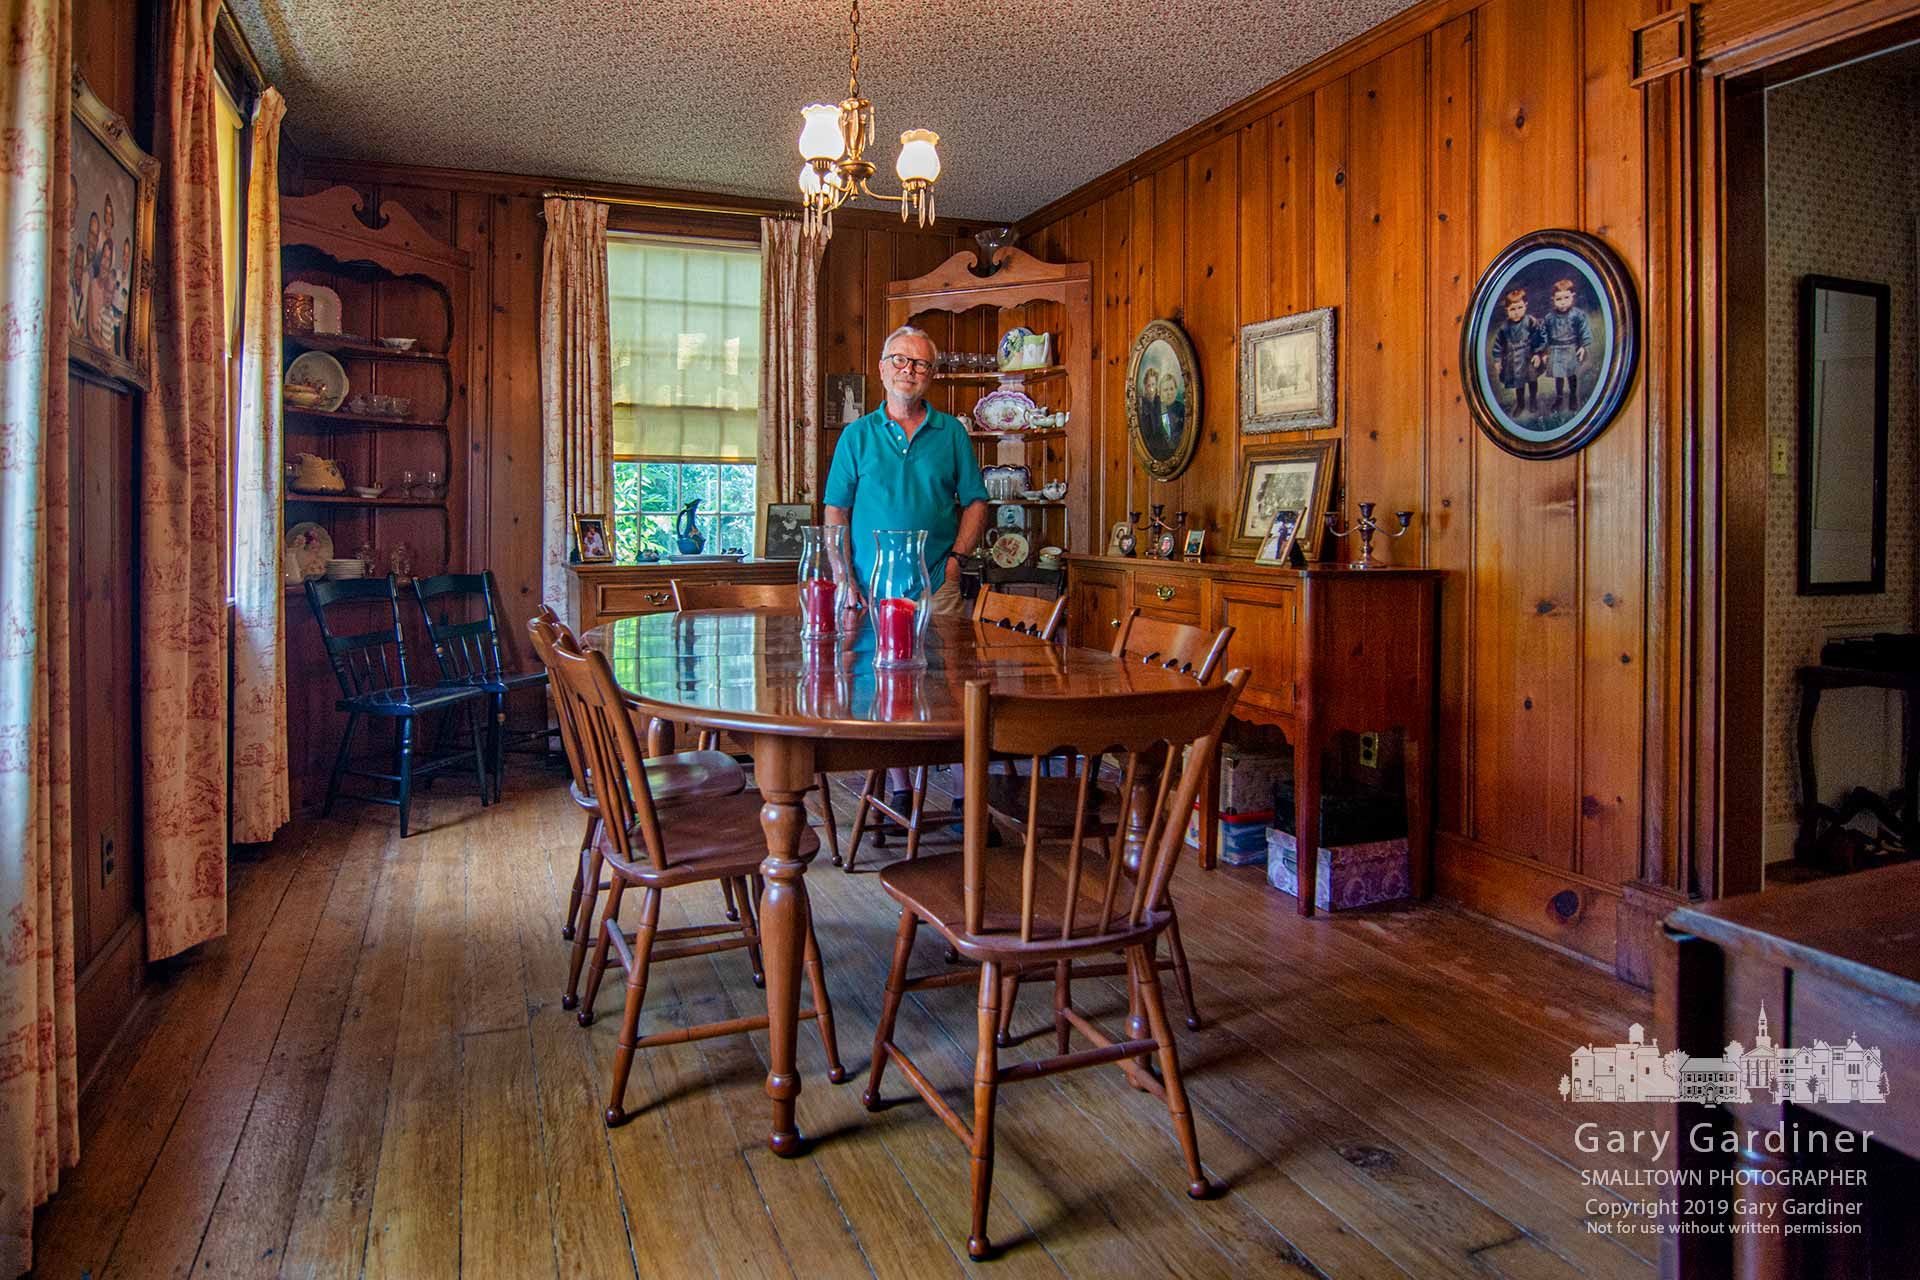 Bill Goldsmith stands in the dining room of the Ebenezer Washburn historical home on South Sunbury Road during the Tapestry of a Town annual tour of homes and businesses in Westerville that bear a portion of the region's heritage. My Final Photo for July 28, 2019.